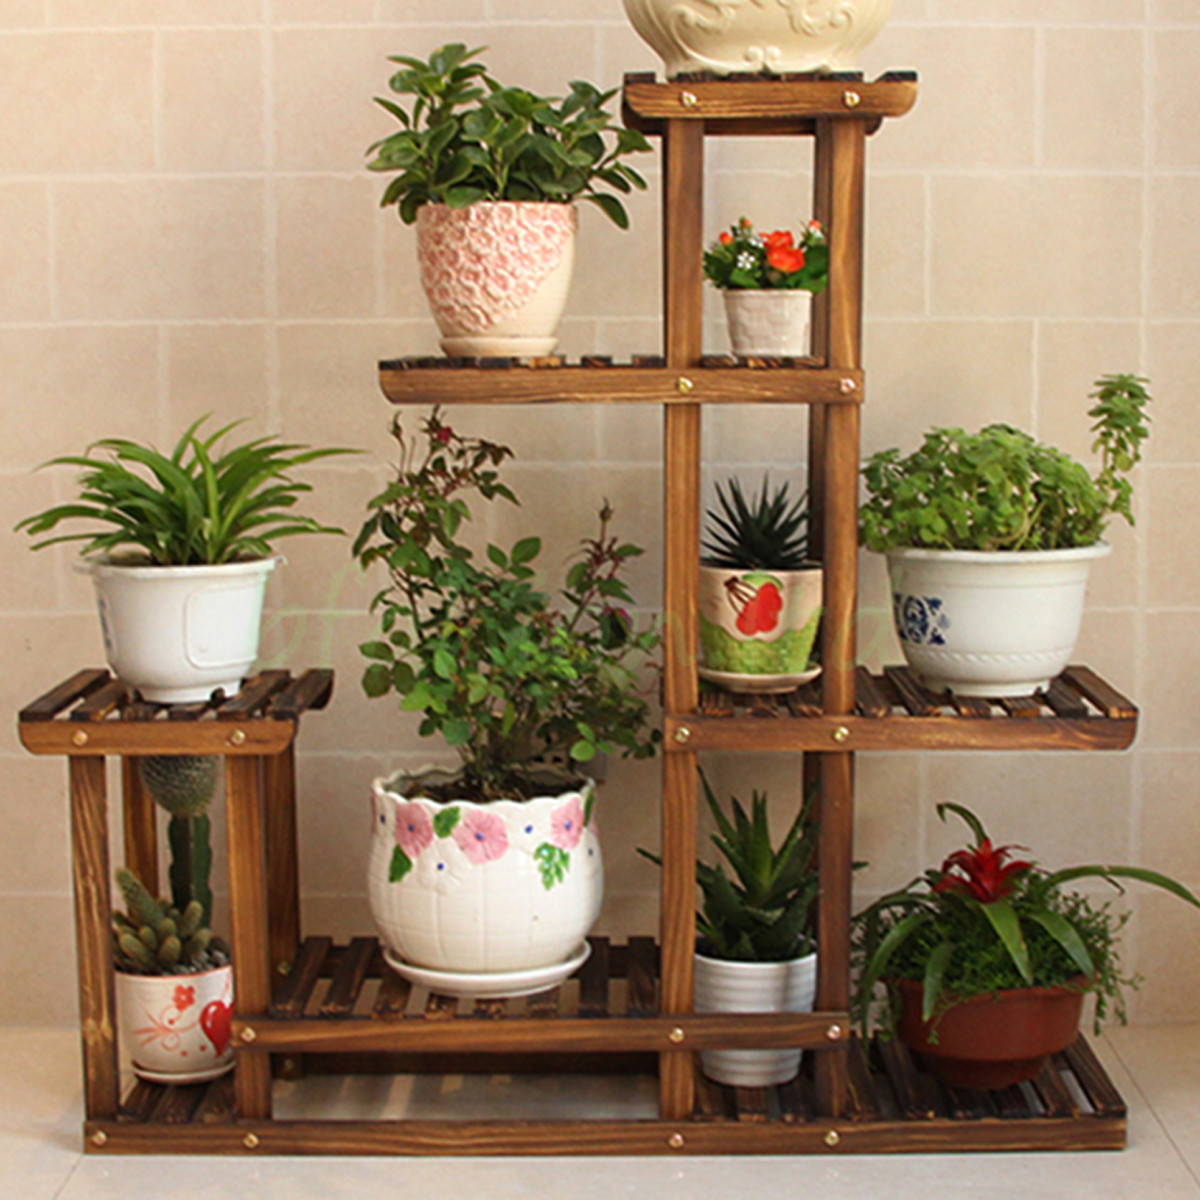 wooden plant flower herb display stand shelf storage rack outdoor 7 pots holder ebay. Black Bedroom Furniture Sets. Home Design Ideas